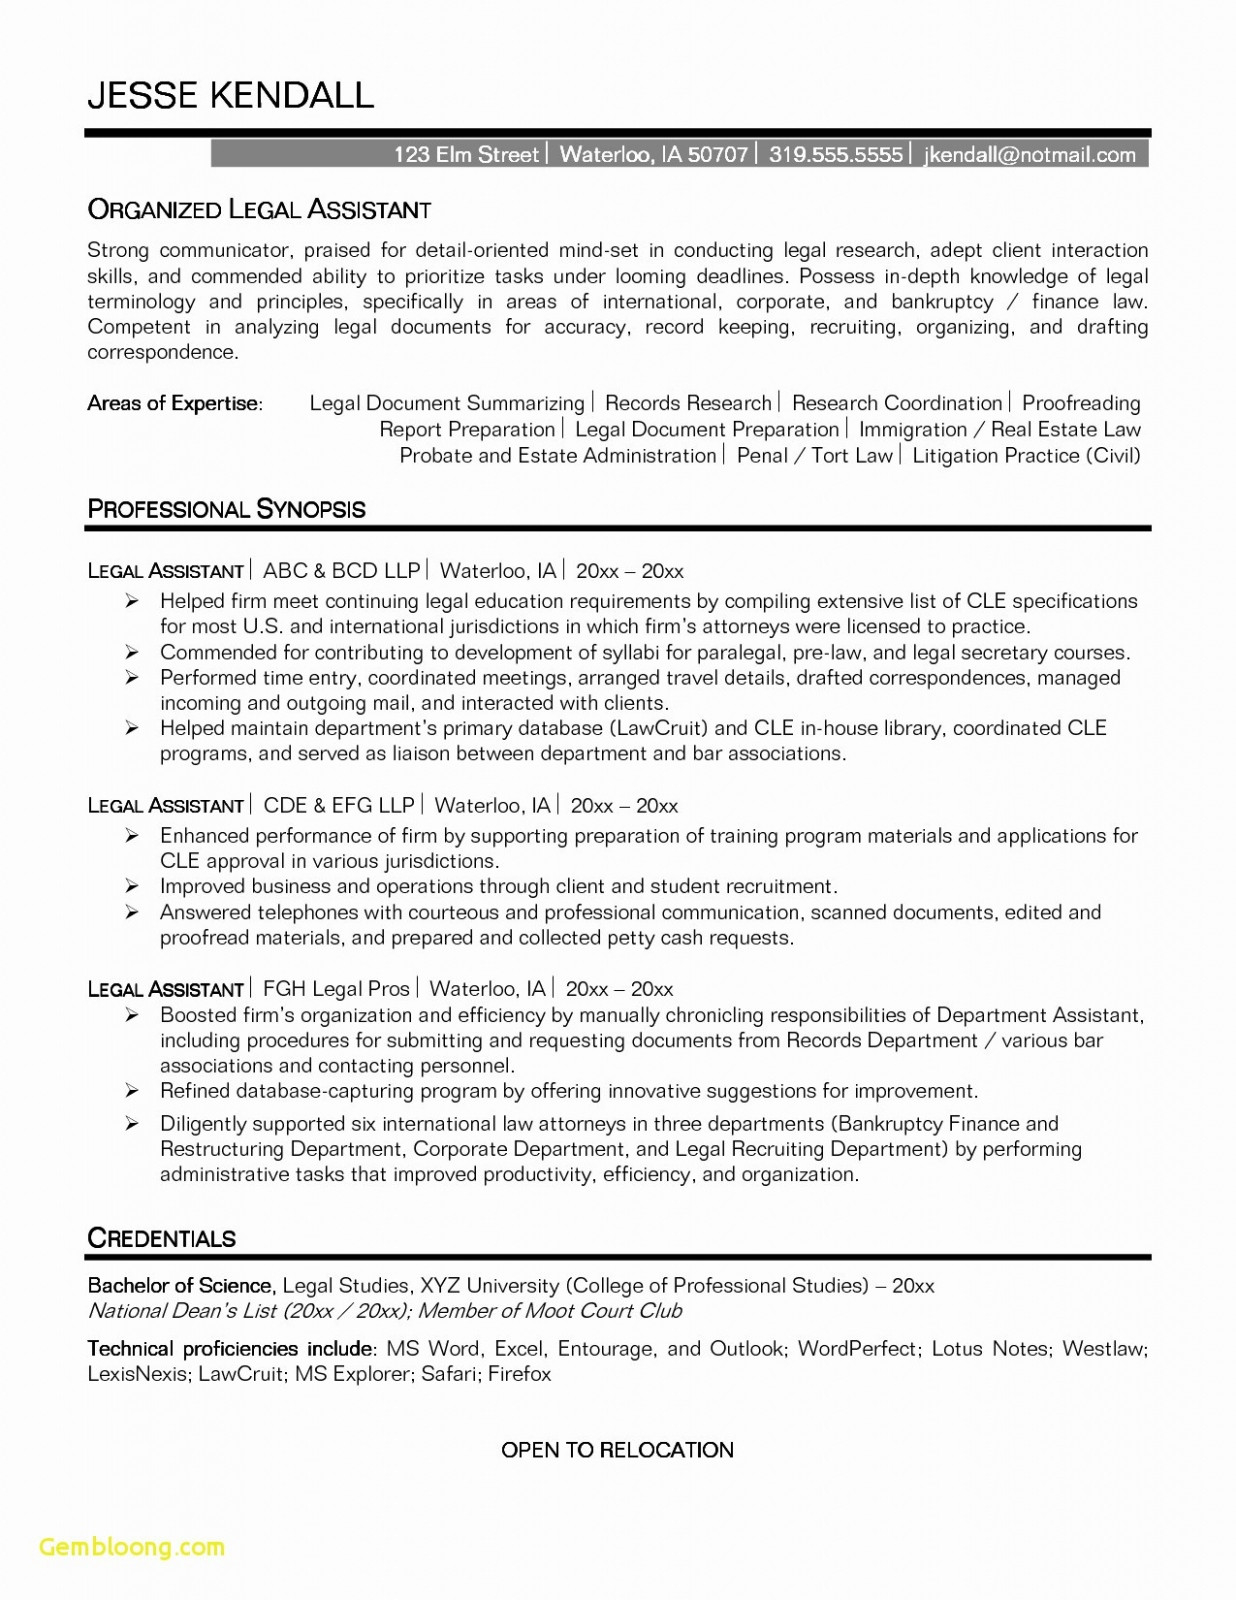 Wordperfect Resume Template - Professional Executive assistant Resume Free Downloads Resume